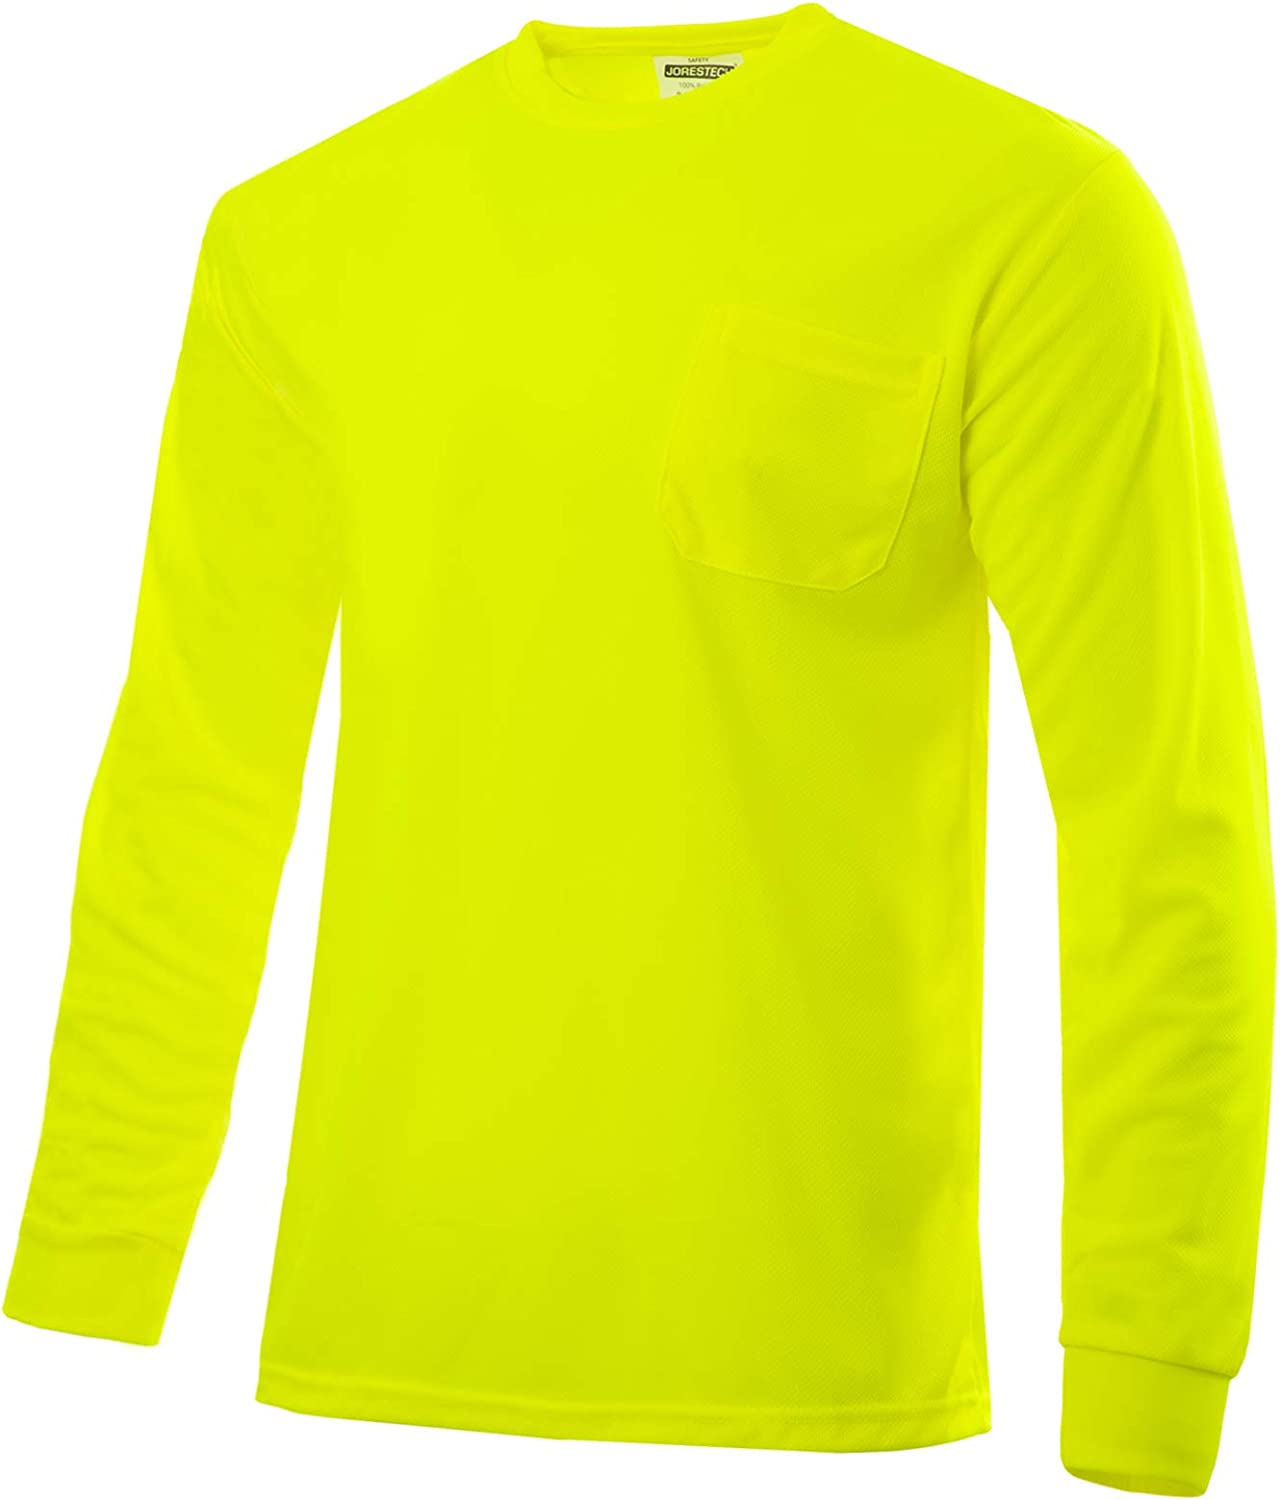 JORESTECH High Visibility T-Shirt with Pocket Long Sleeve